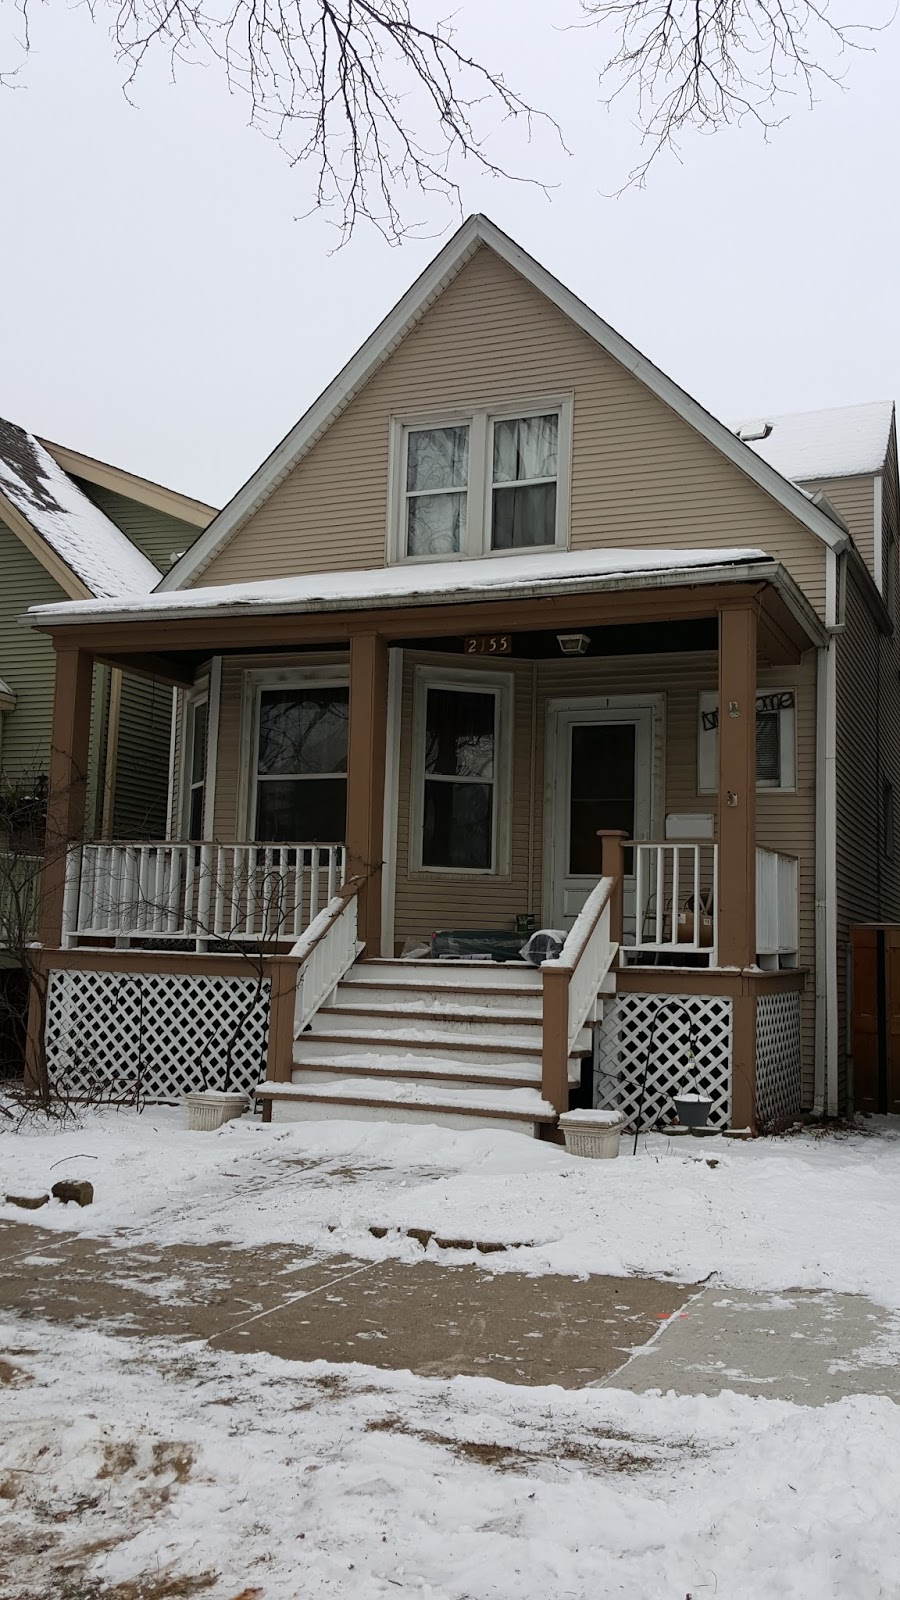 The Chicago Real Estate Local: Newest tear down today in Bowmanville... plus house sales